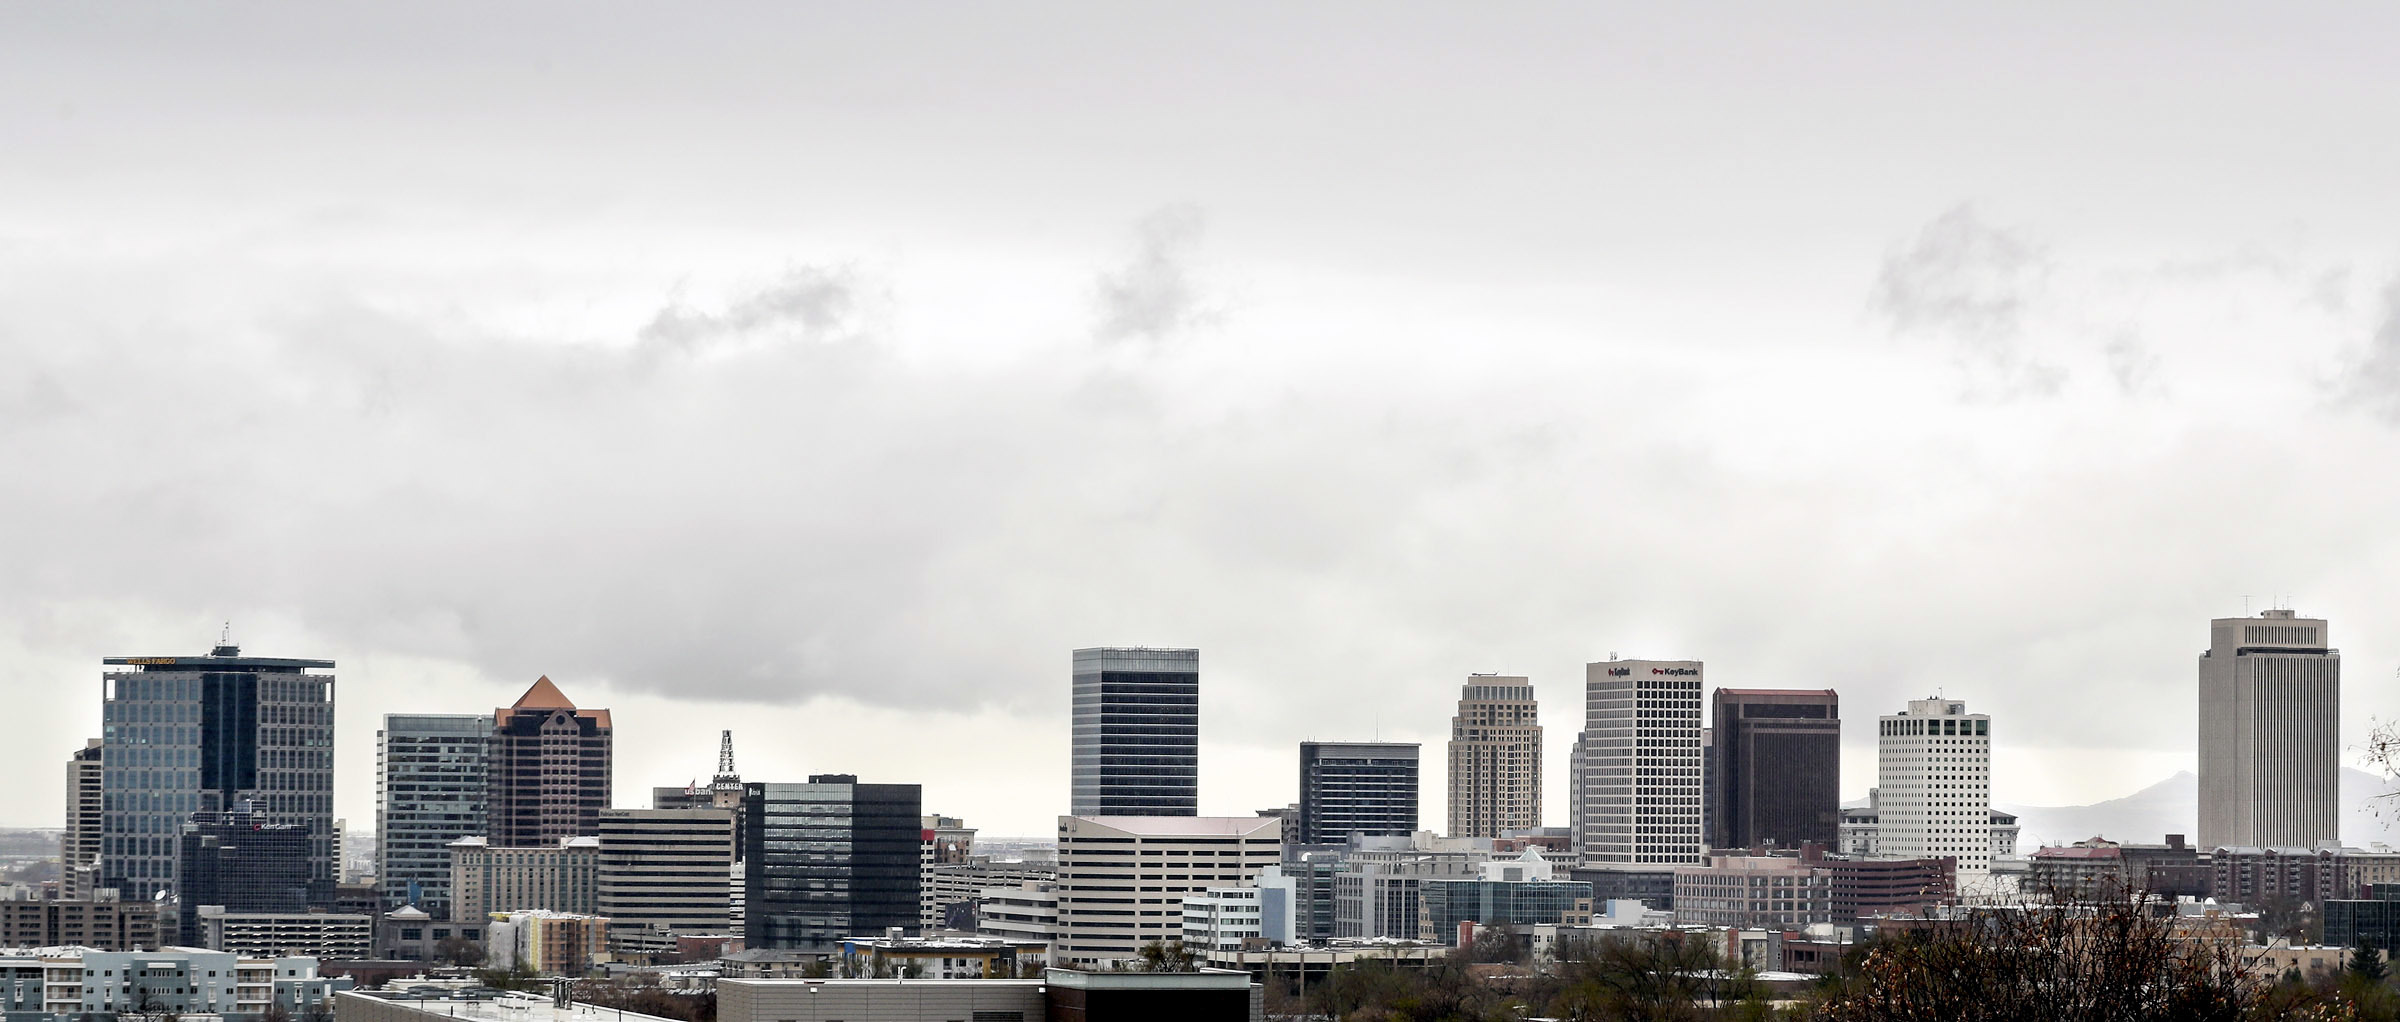 Salt Lake City's skyline is about to dramatically change